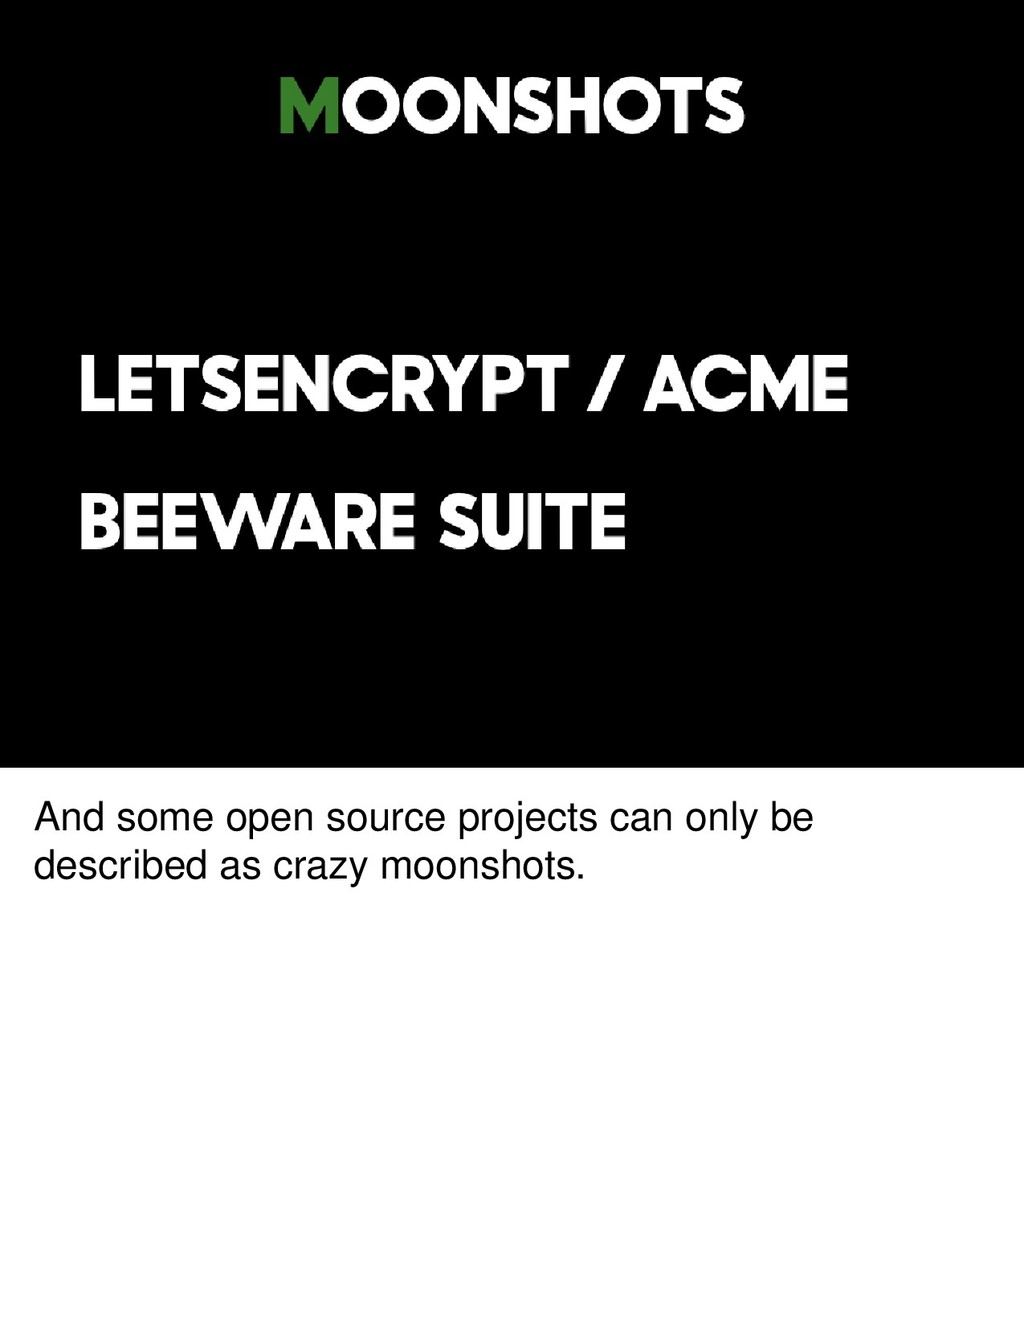 And some open source projects can only be descr...